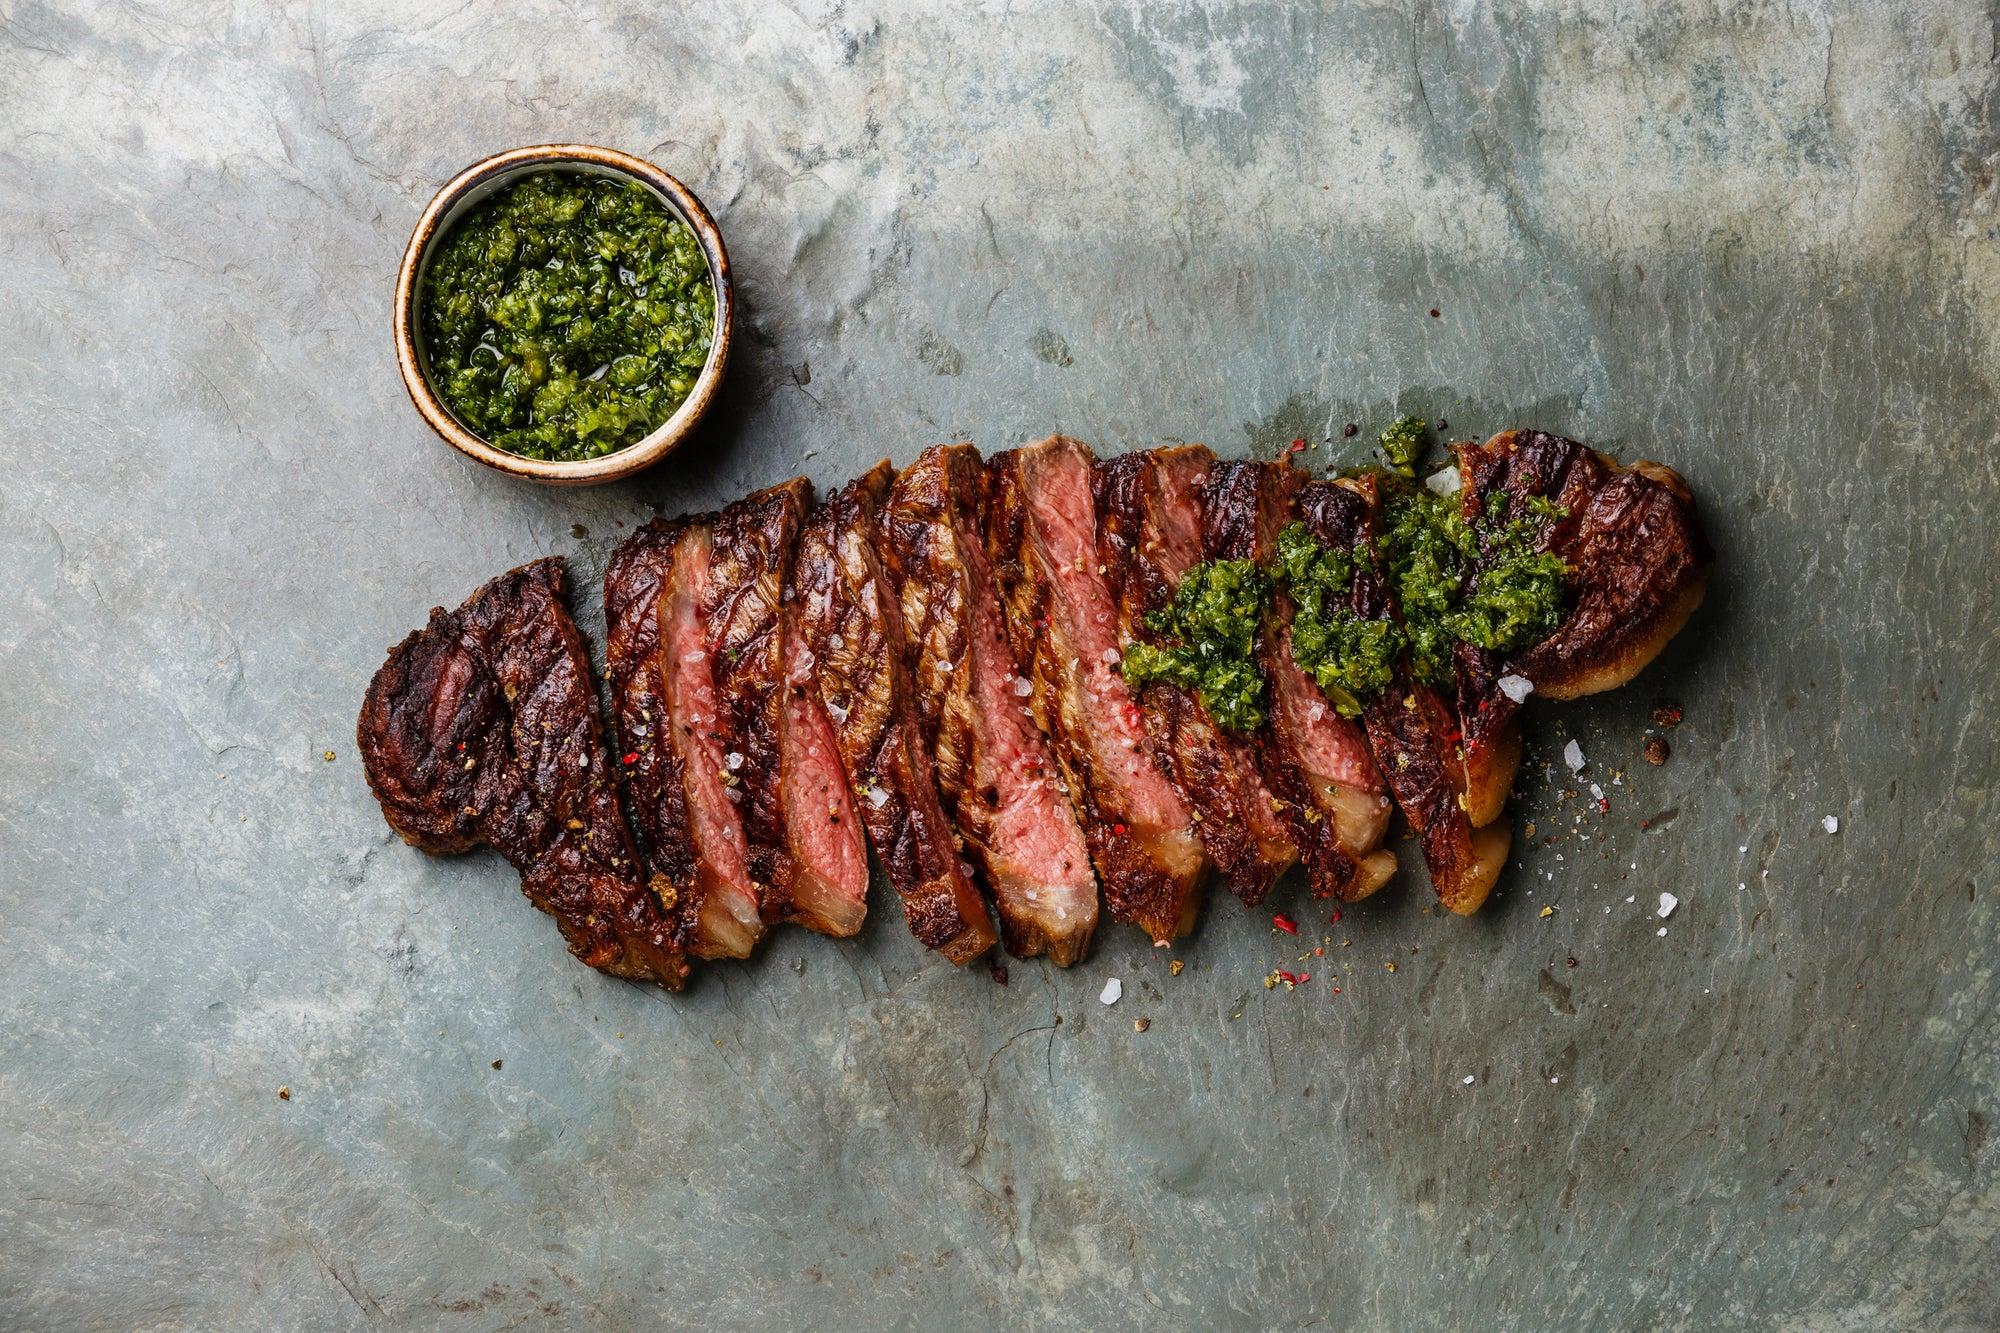 Homemade Chimichurri with Flat Iron Steak